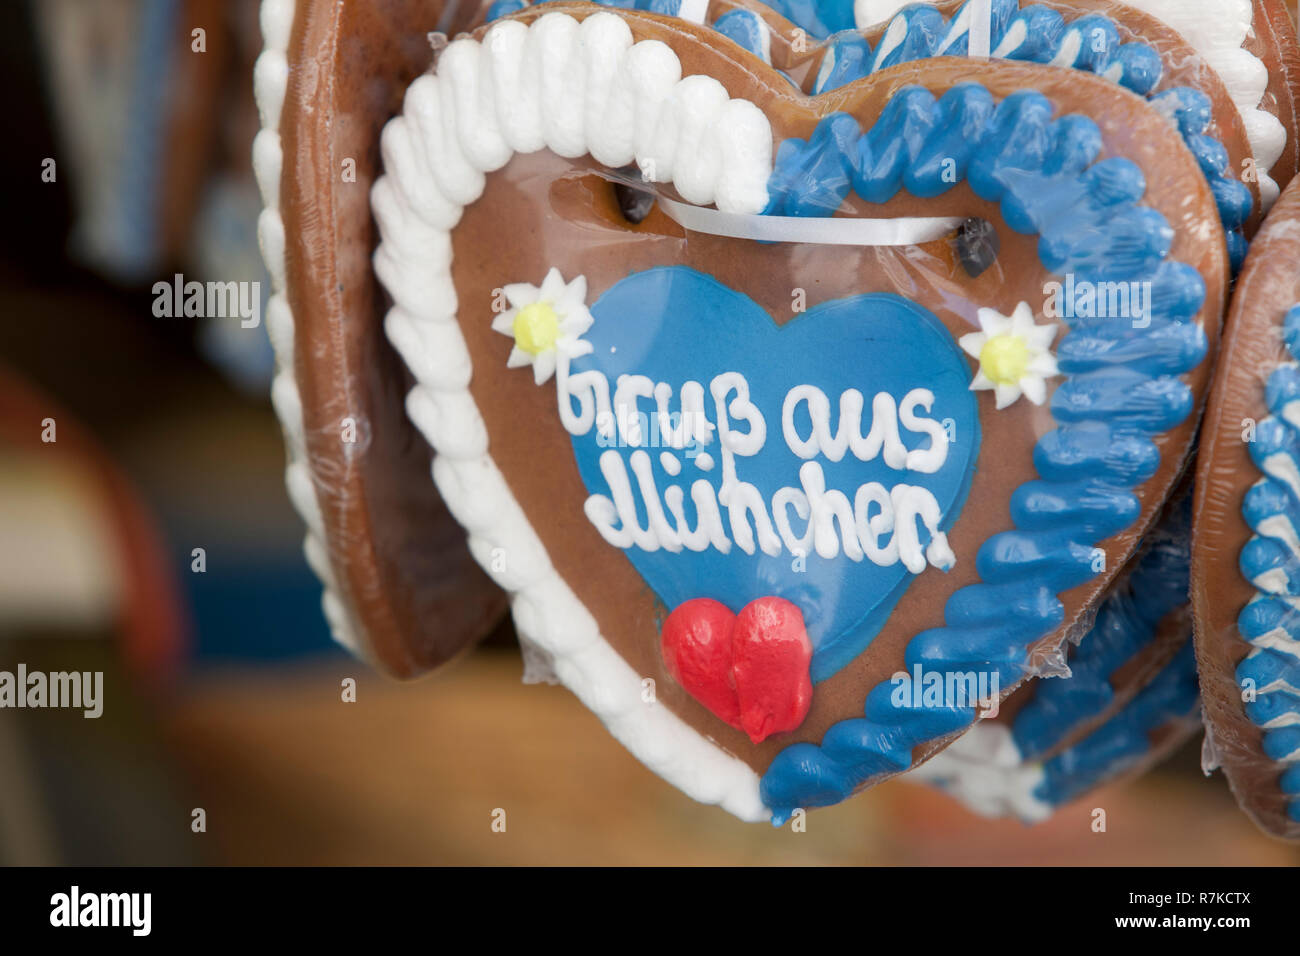 Oktoberfest Style Gingerbread Heart With The Text Gruss Aus Muenchen Greeting From Munich